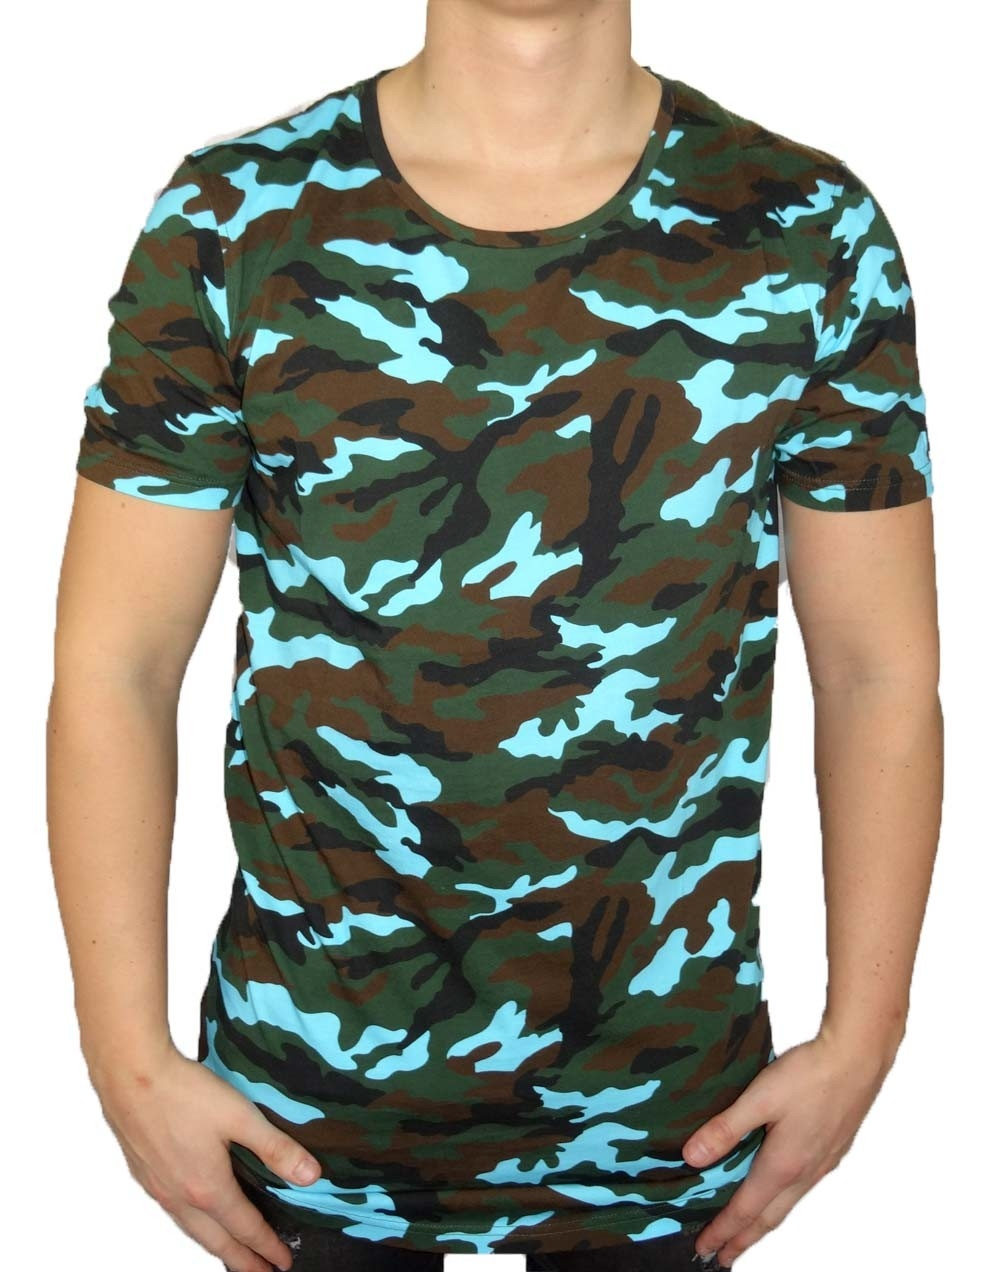 masko t shirt herren camouflage blau black kaviar. Black Bedroom Furniture Sets. Home Design Ideas